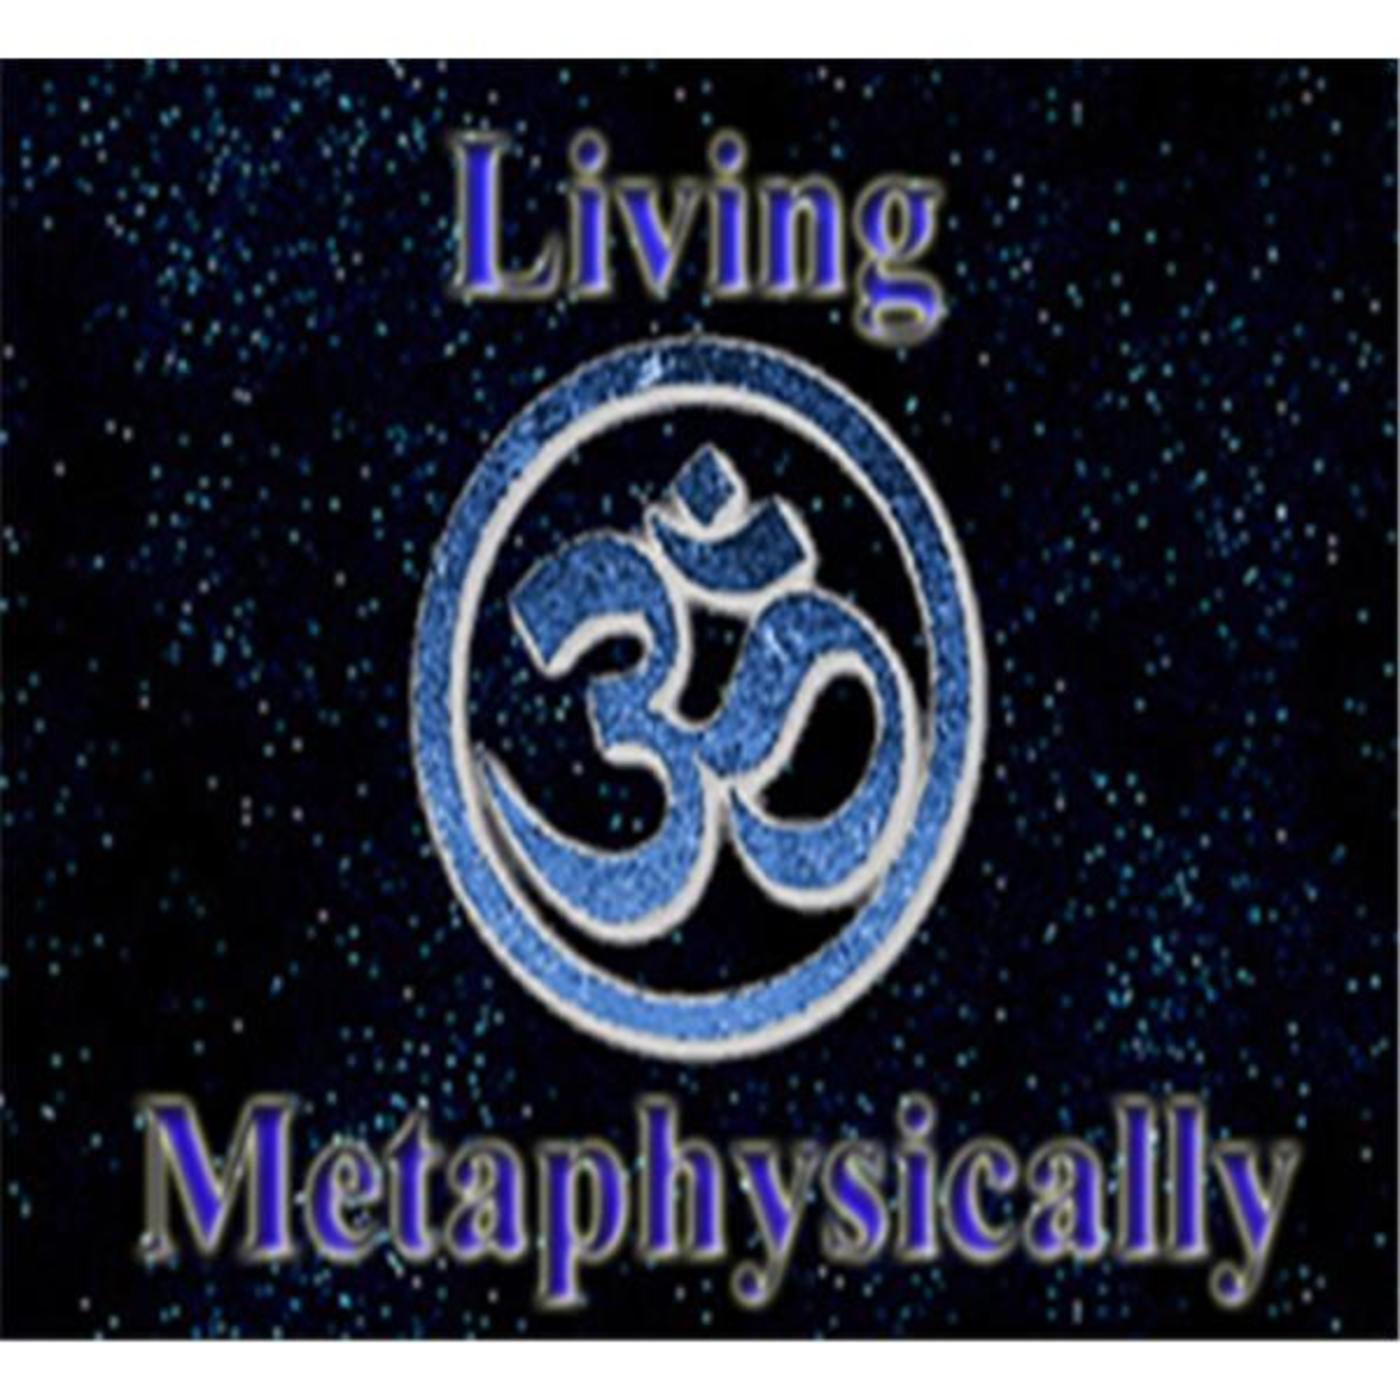 Living Metaphysically